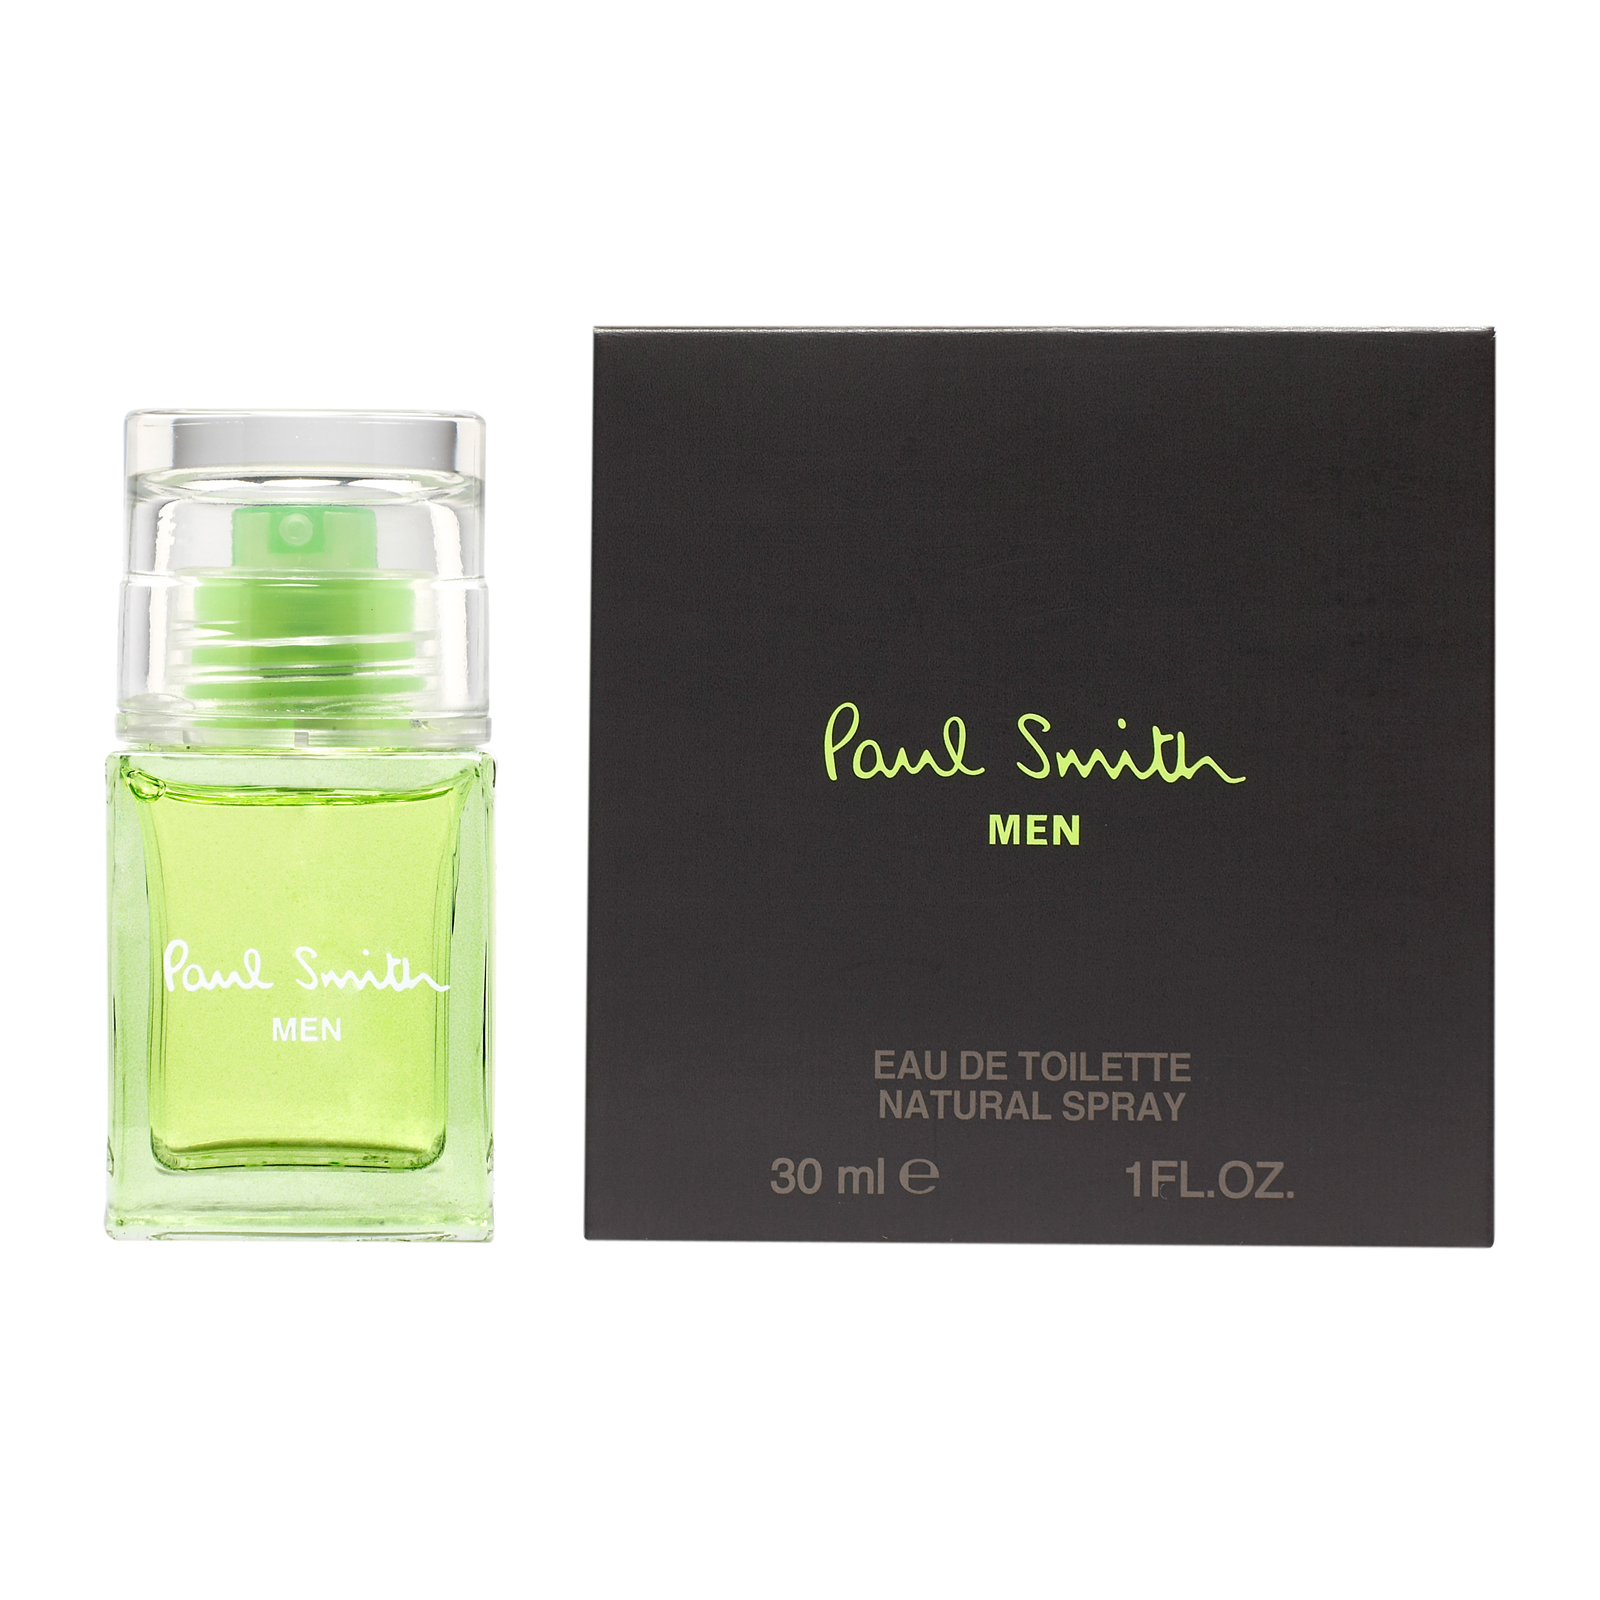 PAUL SMITH MEN EDT 30 ML VP